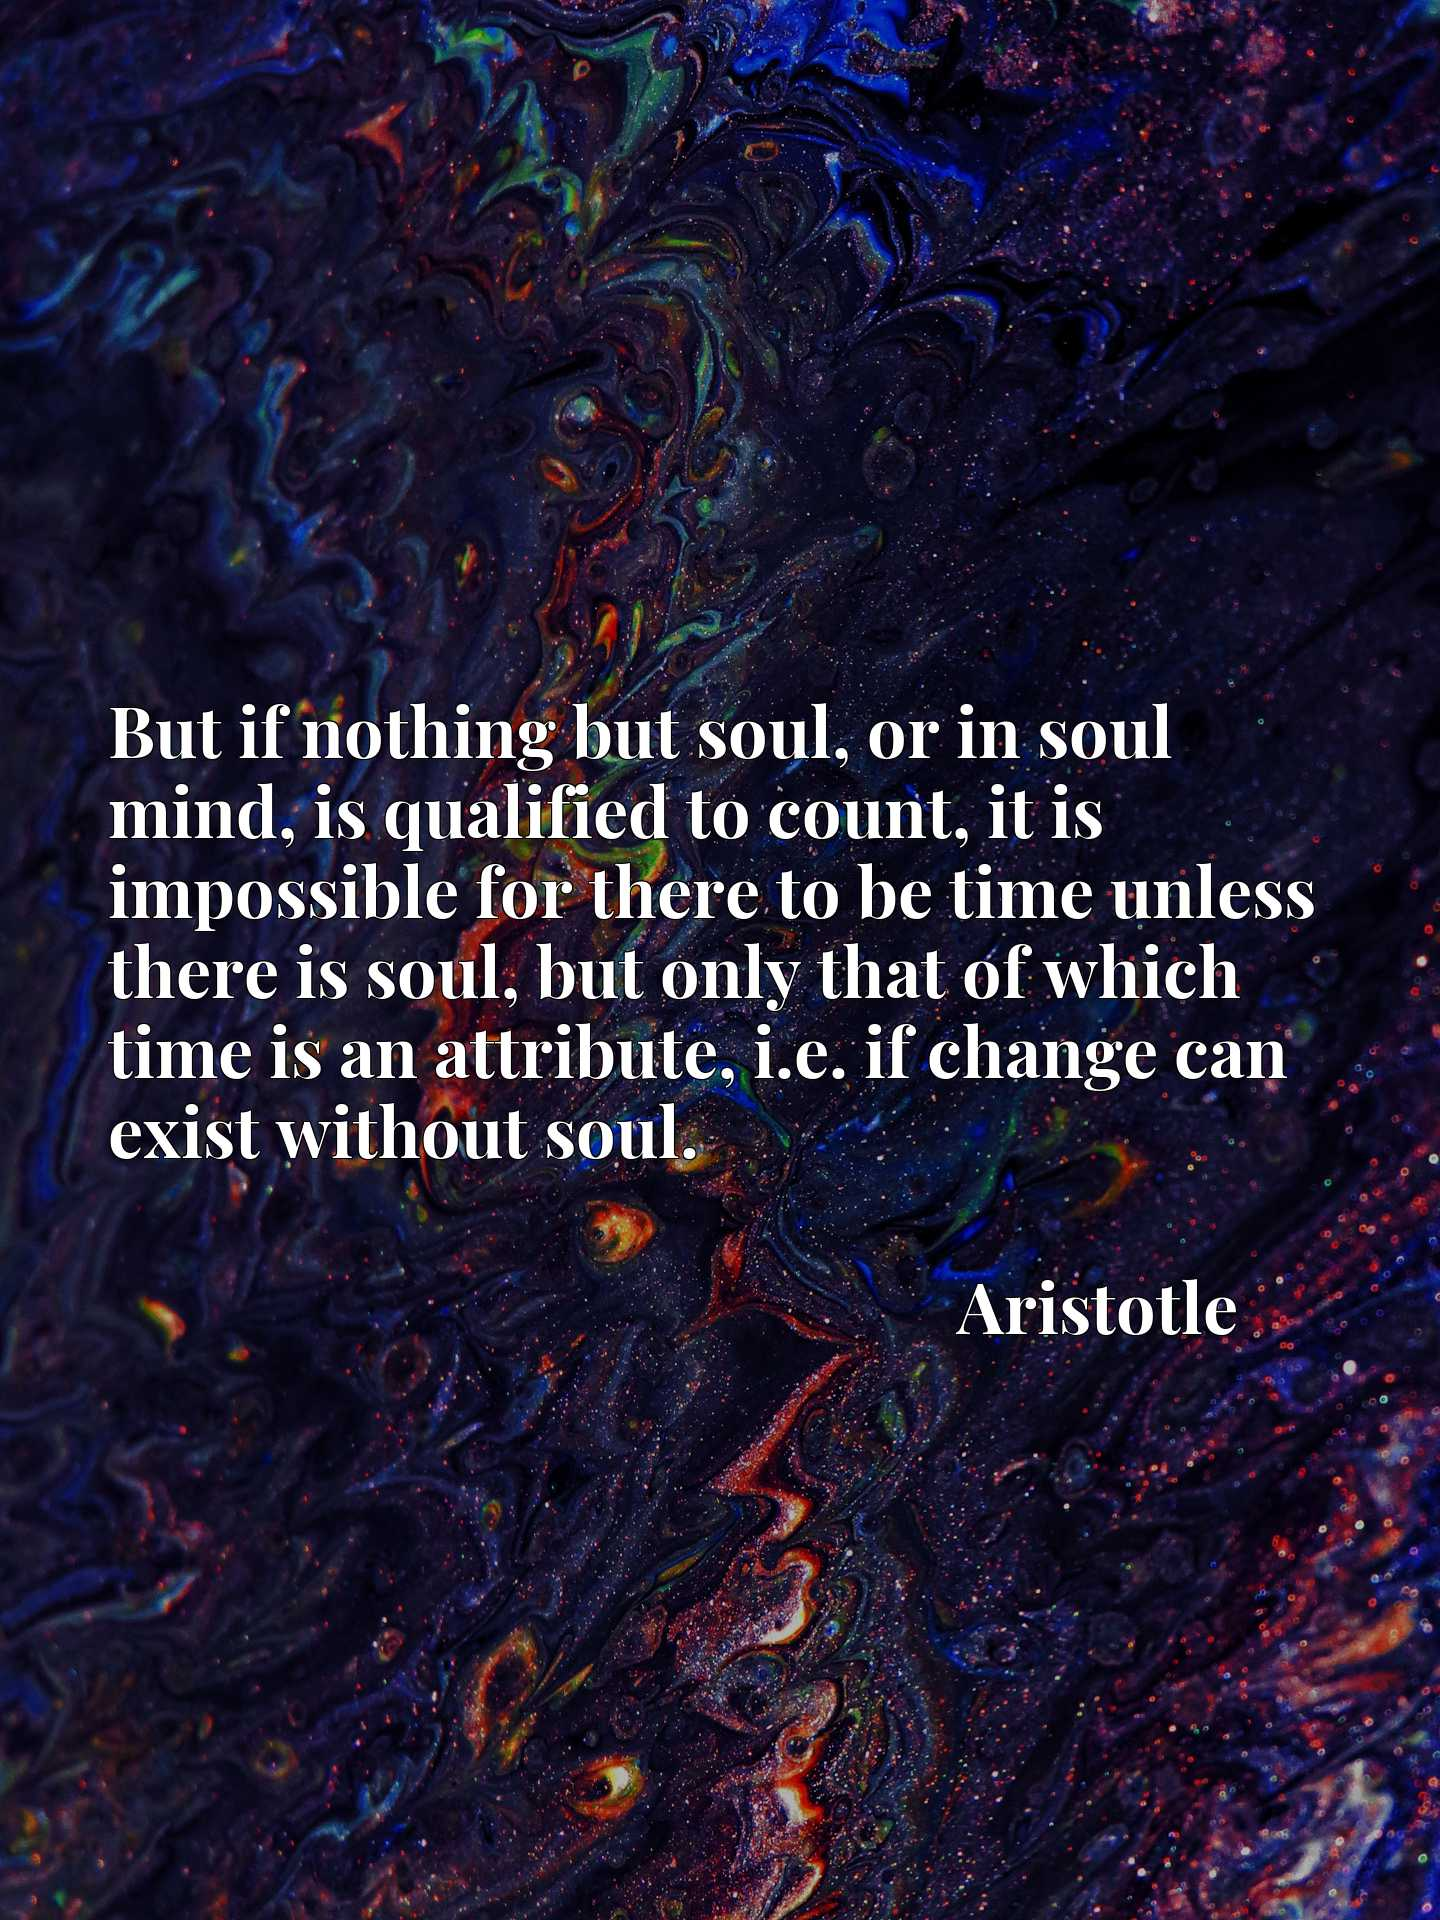 But if nothing but soul, or in soul mind, is qualified to count, it is impossible for there to be time unless there is soul, but only that of which time is an attribute, i.e. if change can exist without soul.